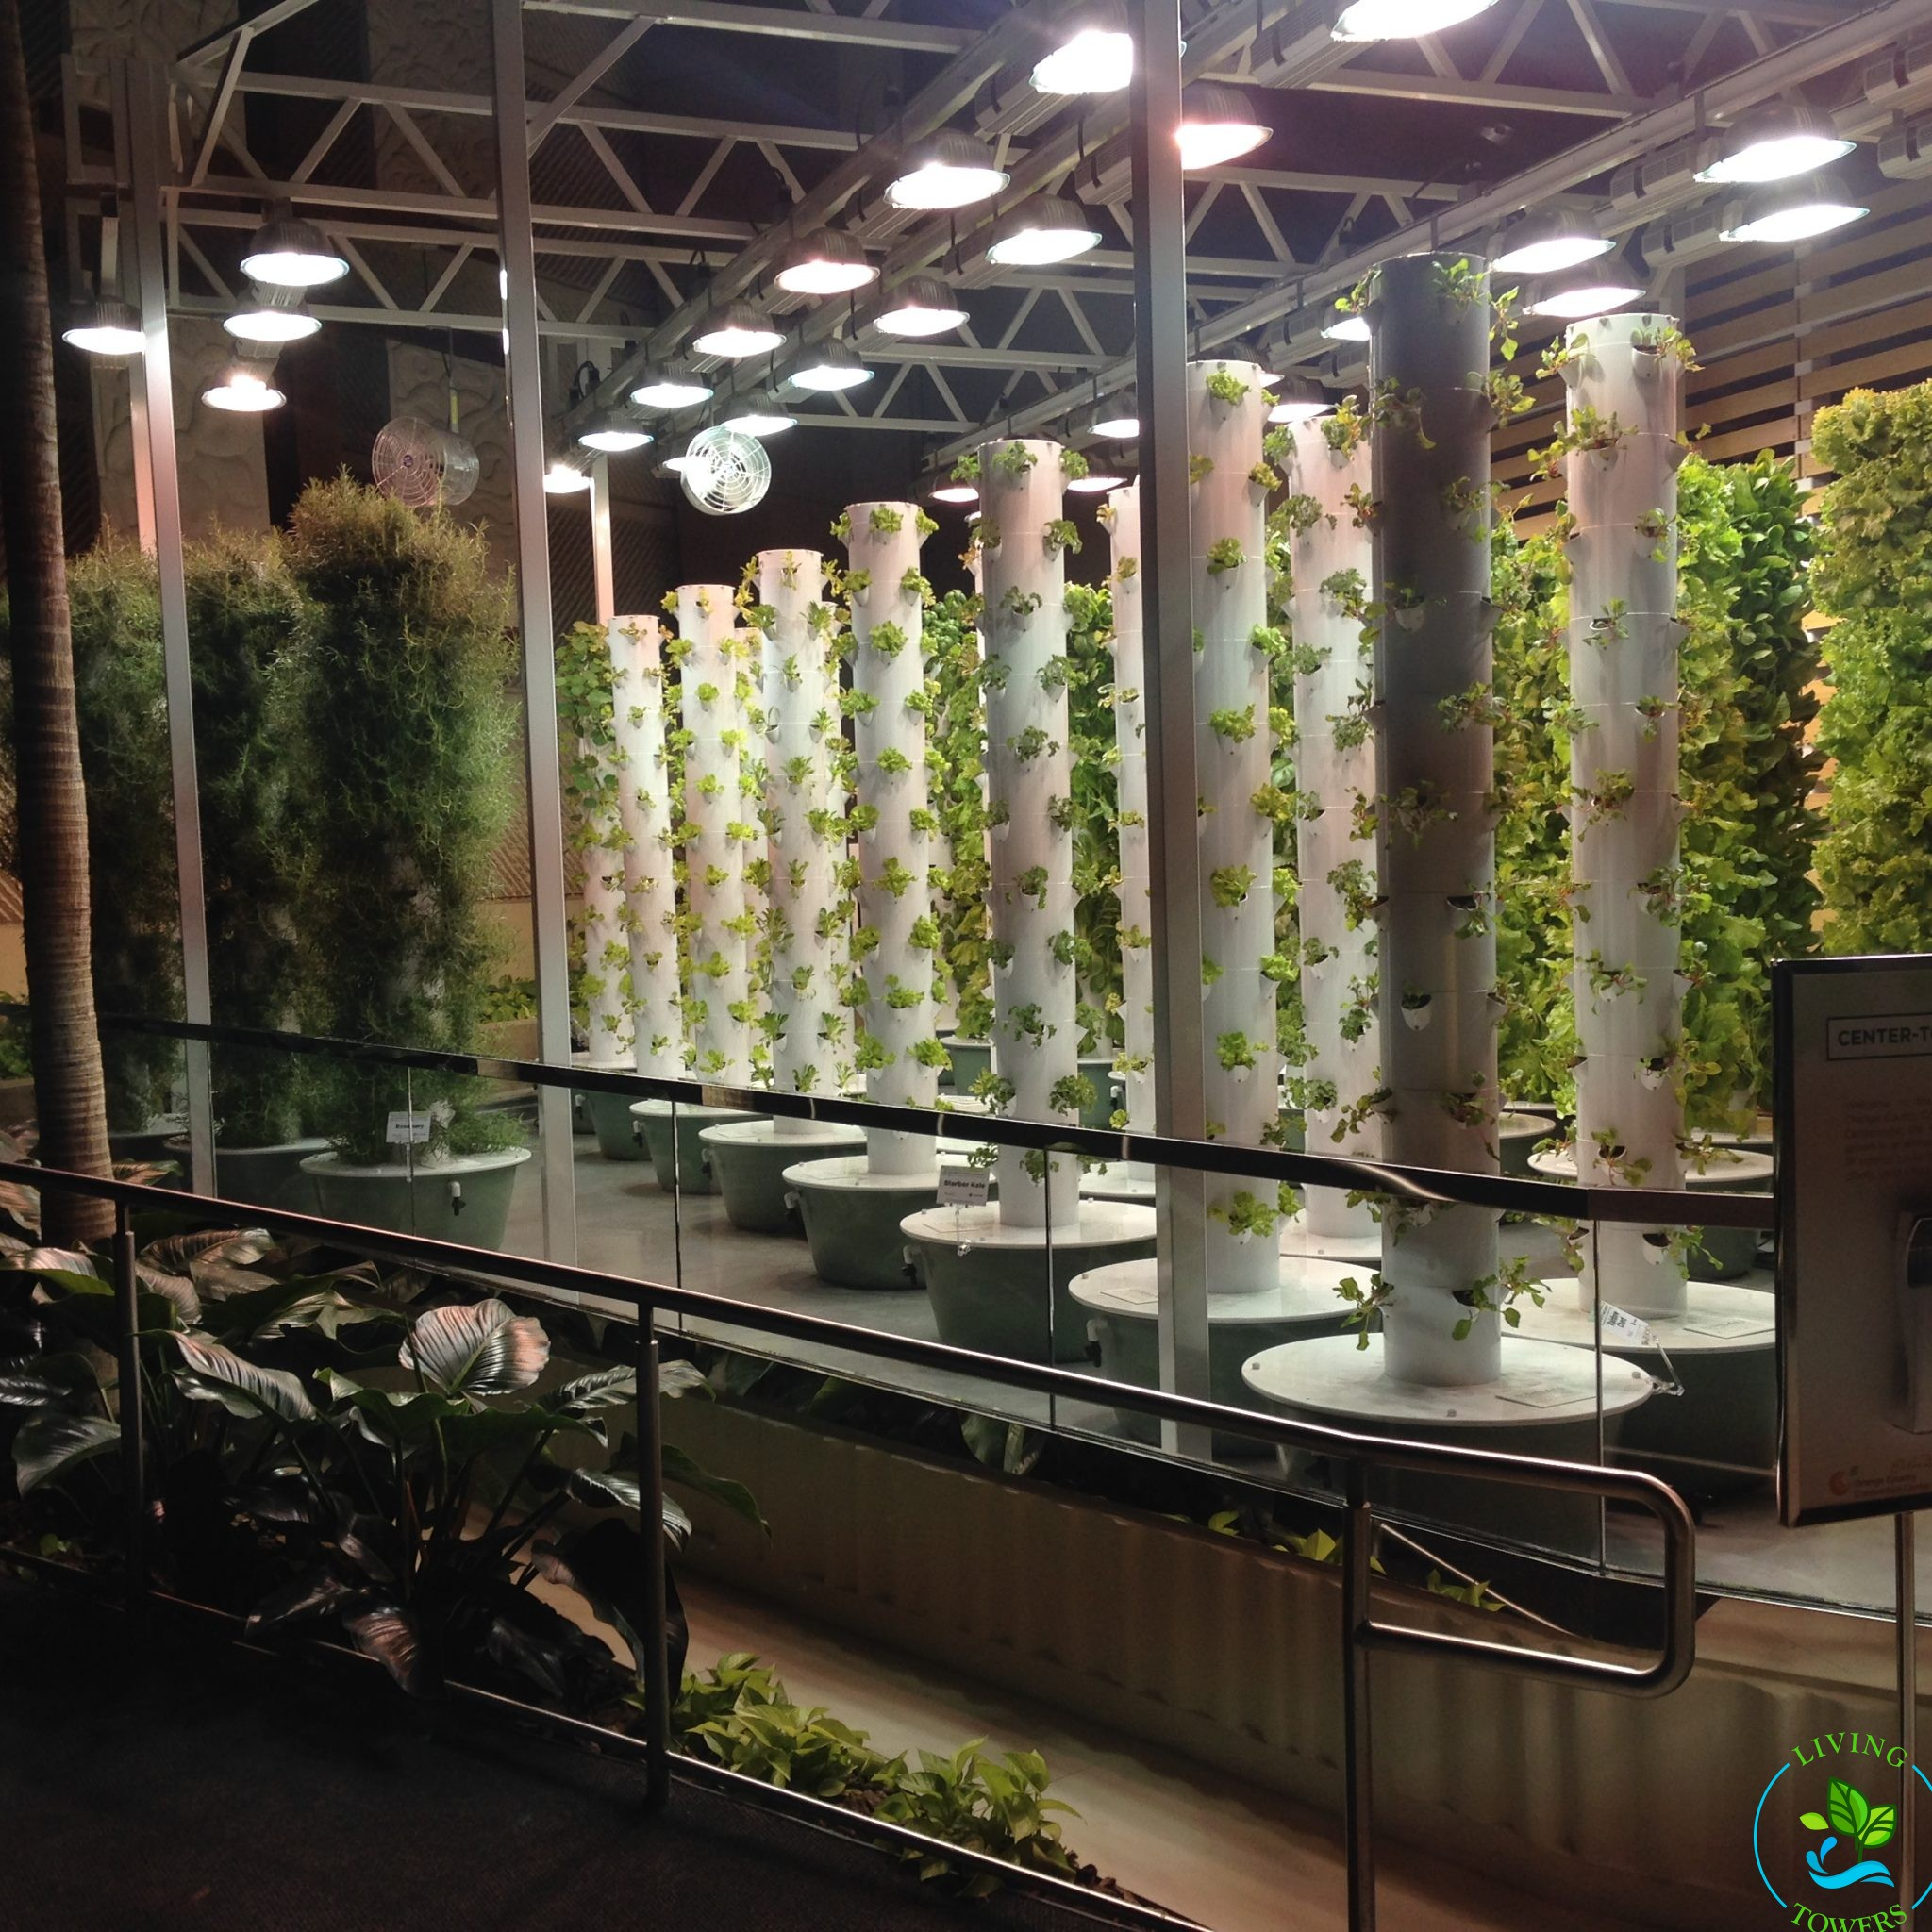 Tower Gardens under Grow Lights at the Orange County Convention Center